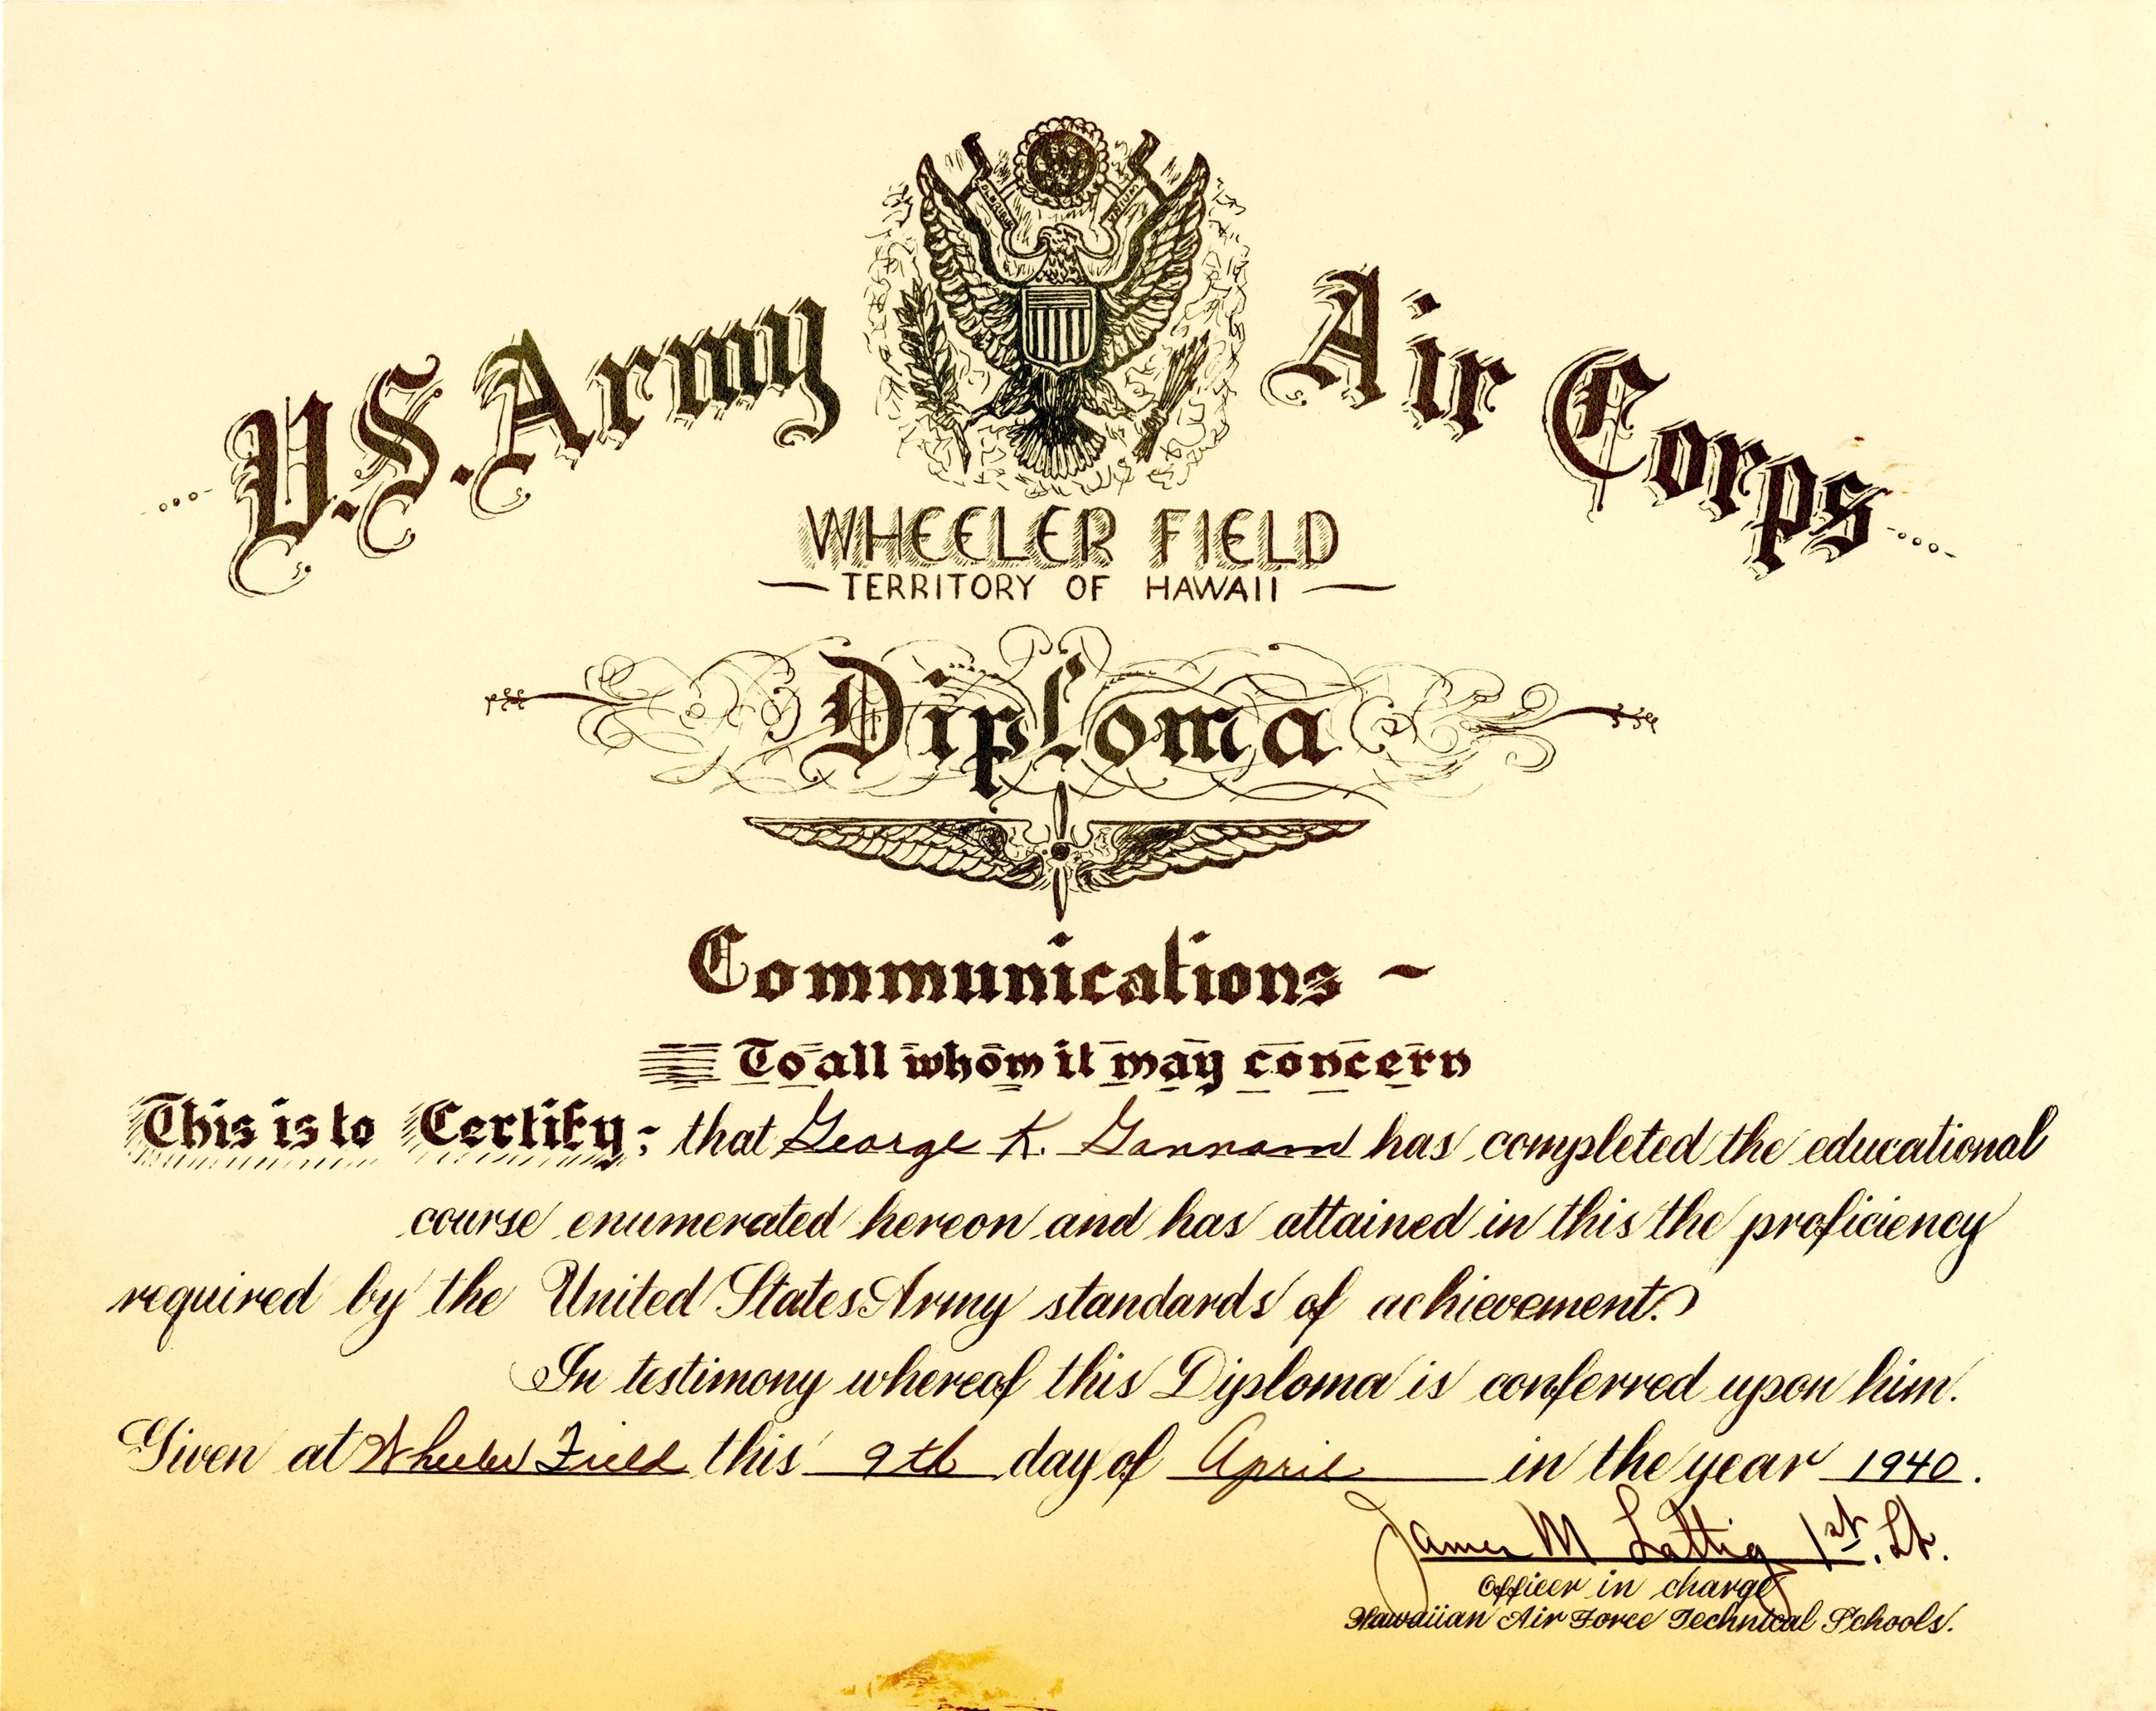 Georges Communications Diploma from Wheeler Field